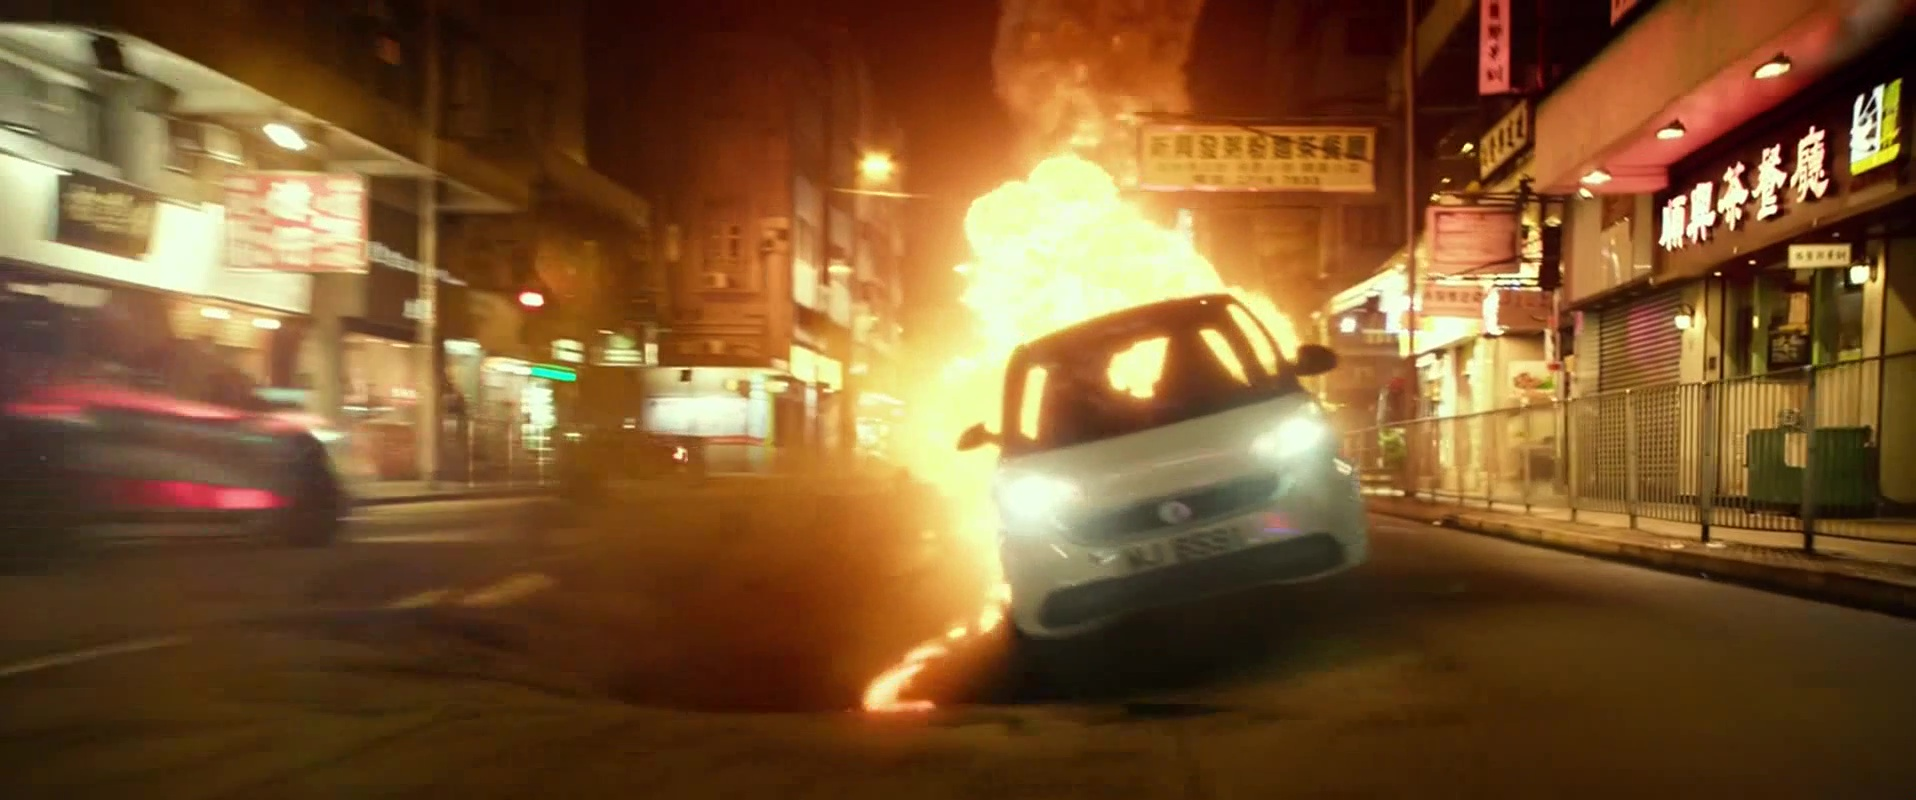 New Lincoln Town Car 2018 >> smart Fortwo Electric Drive Car Used by Daniel Wu in Geostorm (2017) Movie